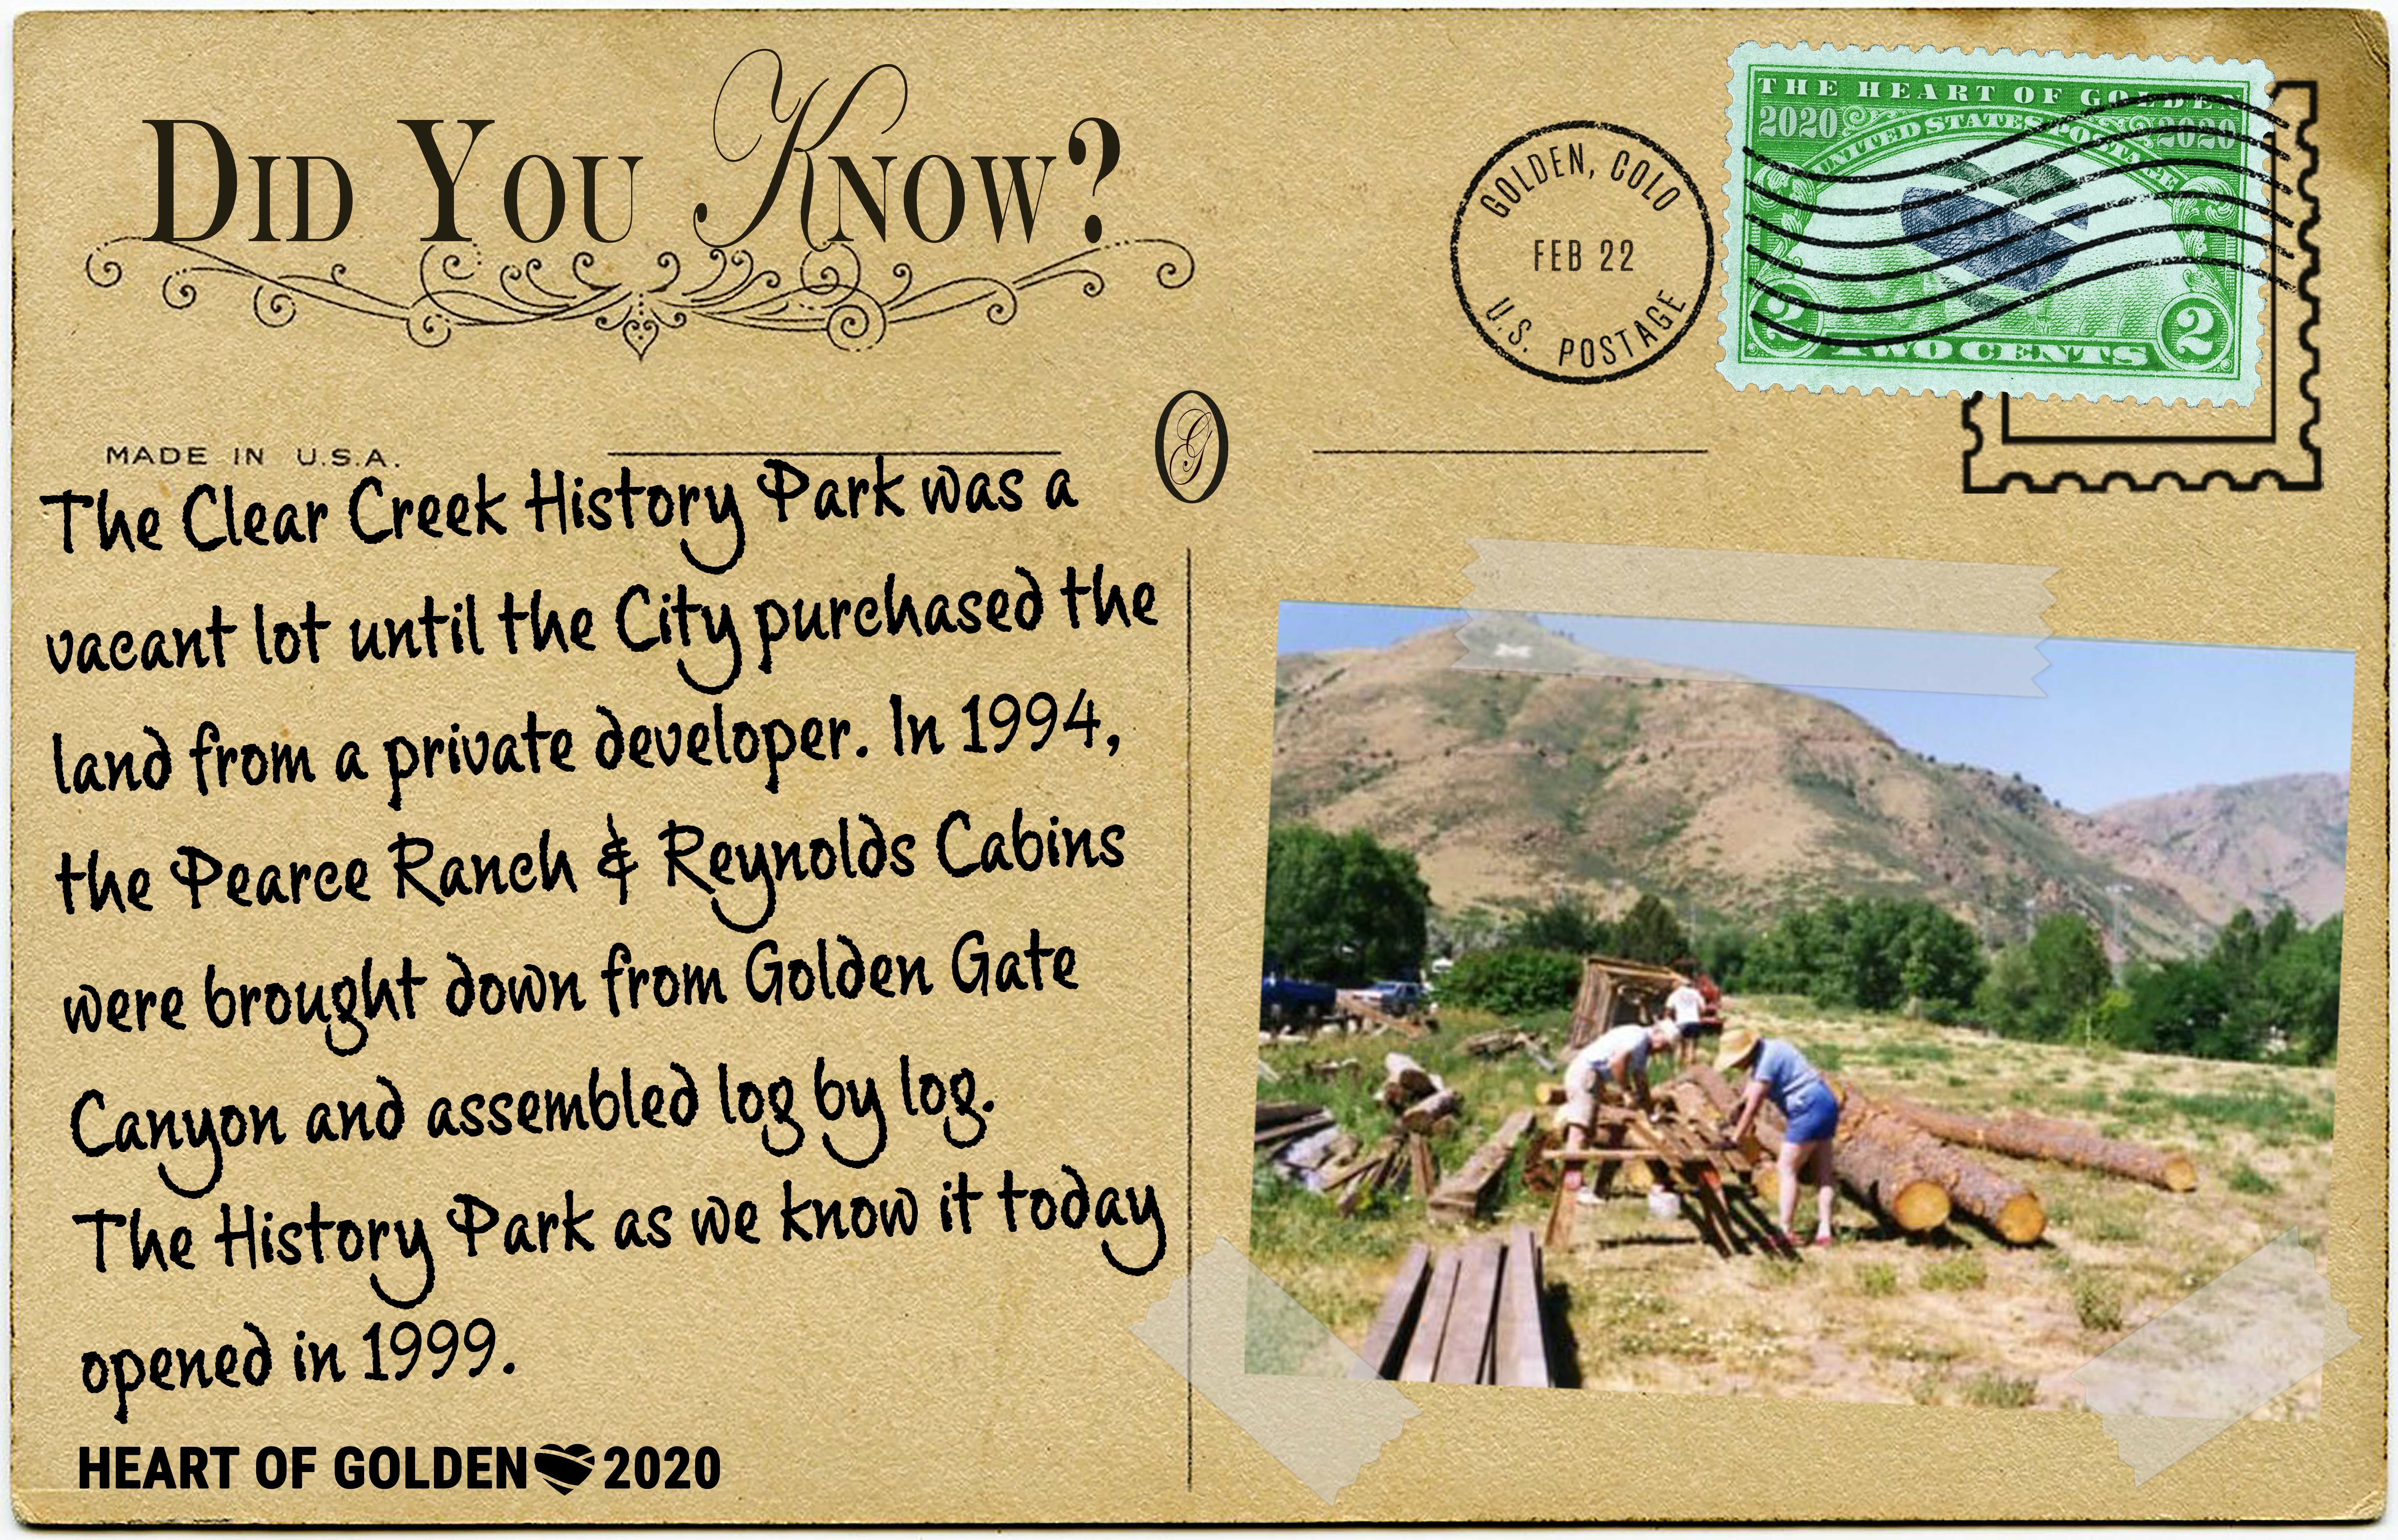 The Golden History Park was a vacant lot until the City purchased it in the early 90's!